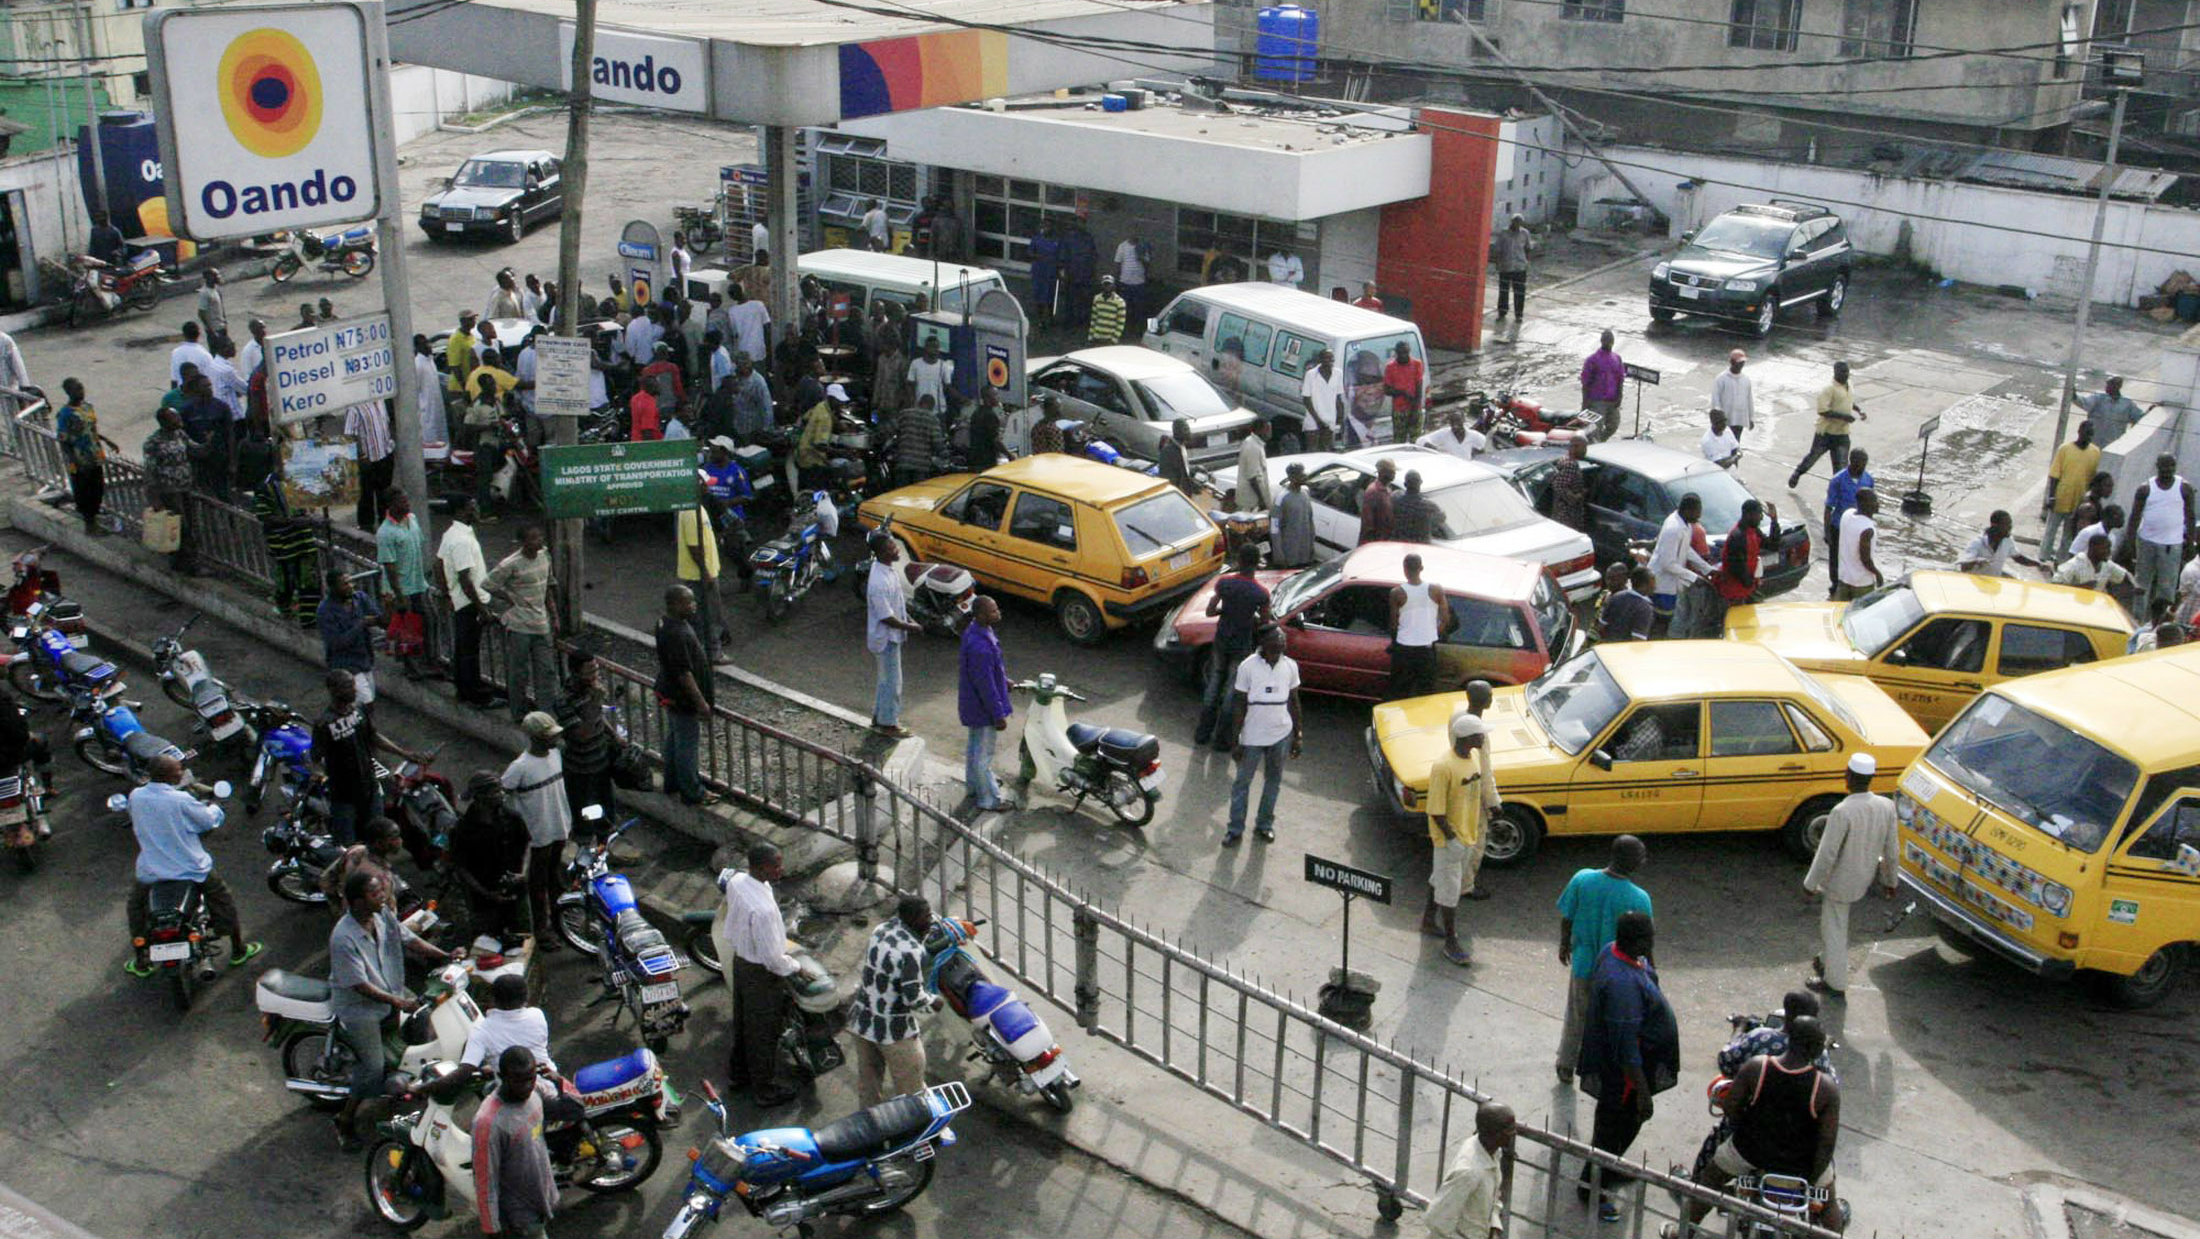 People wait with their vehicles to buy petrol at a fuel station in Nigeria's commercial capital Lagos, June 17, 2007. A strike by fuel tanker drivers, which was in its fourth day on Sunday, has caused the fuel scarcity across Africa's top oil producer and is a prelude to an indefinite general strike due to start on Wednesday in the world's eighth largest oil exporter. The strike is to protest against rising prices and privatisations.